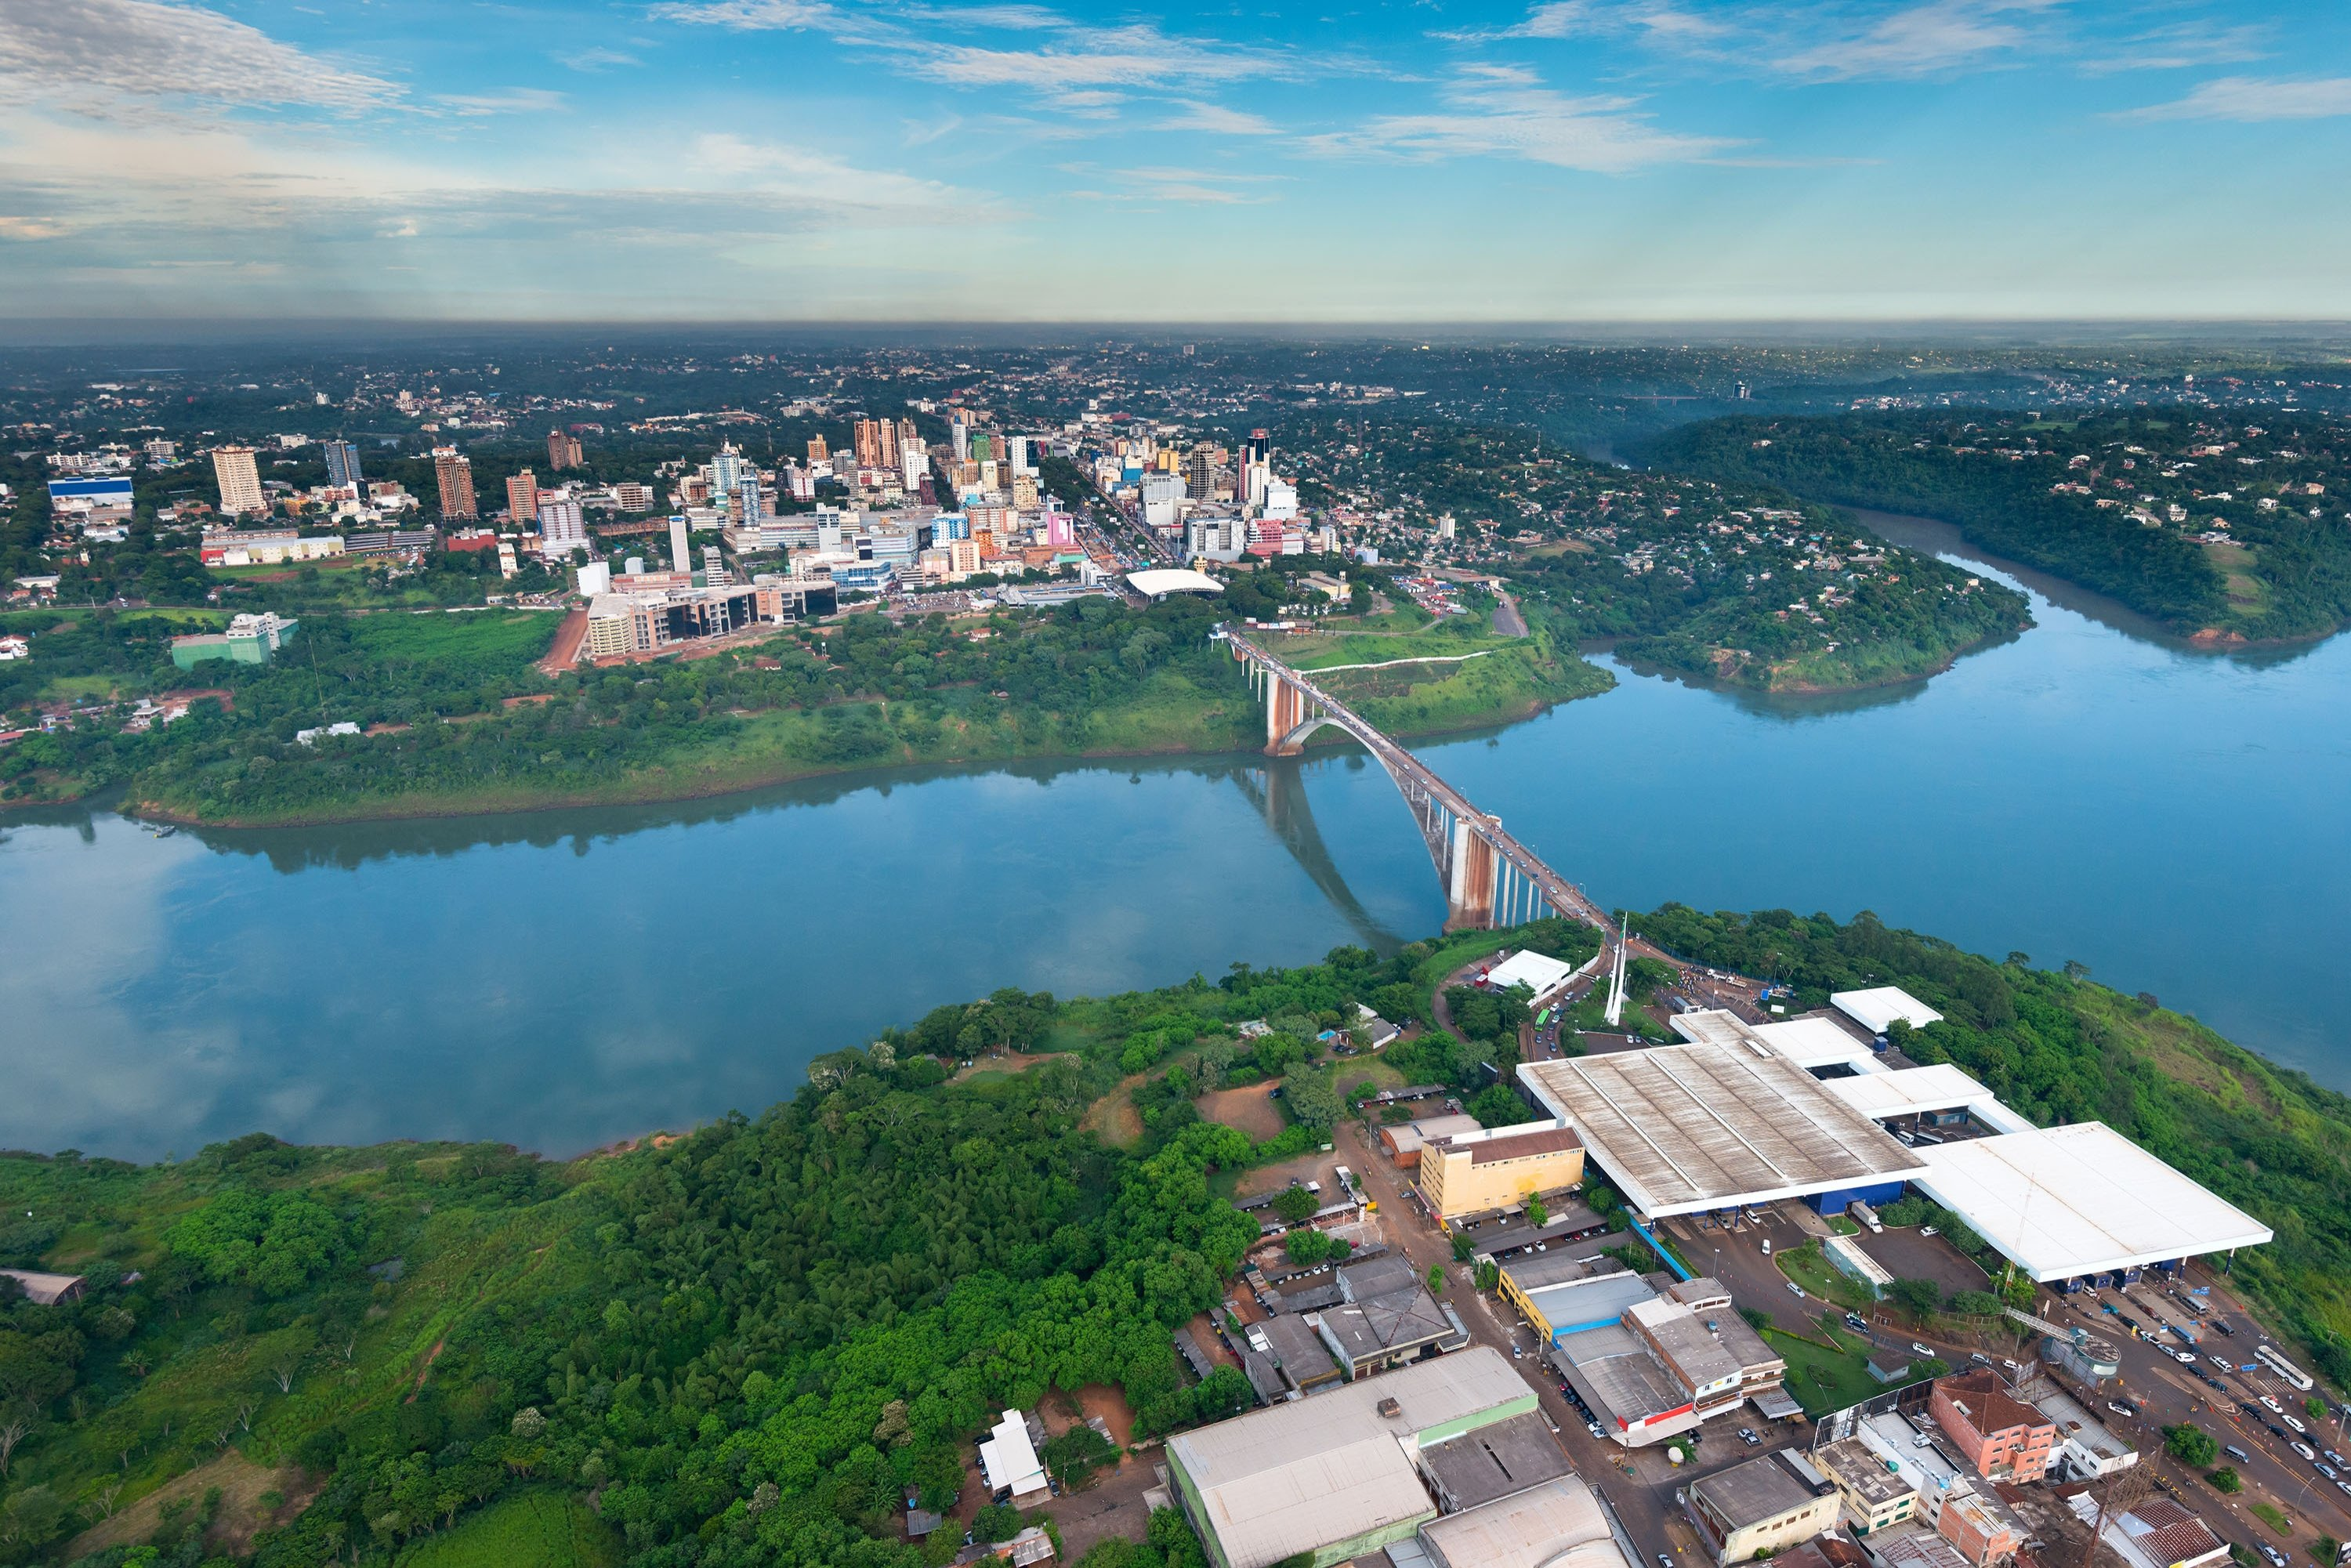 An aerial view of the Paraguayan city of Ciudad del Este and Friendship Bridge, connecting Paraguay and Brazil through the border over the Parana River. (Shutterstock Photo)